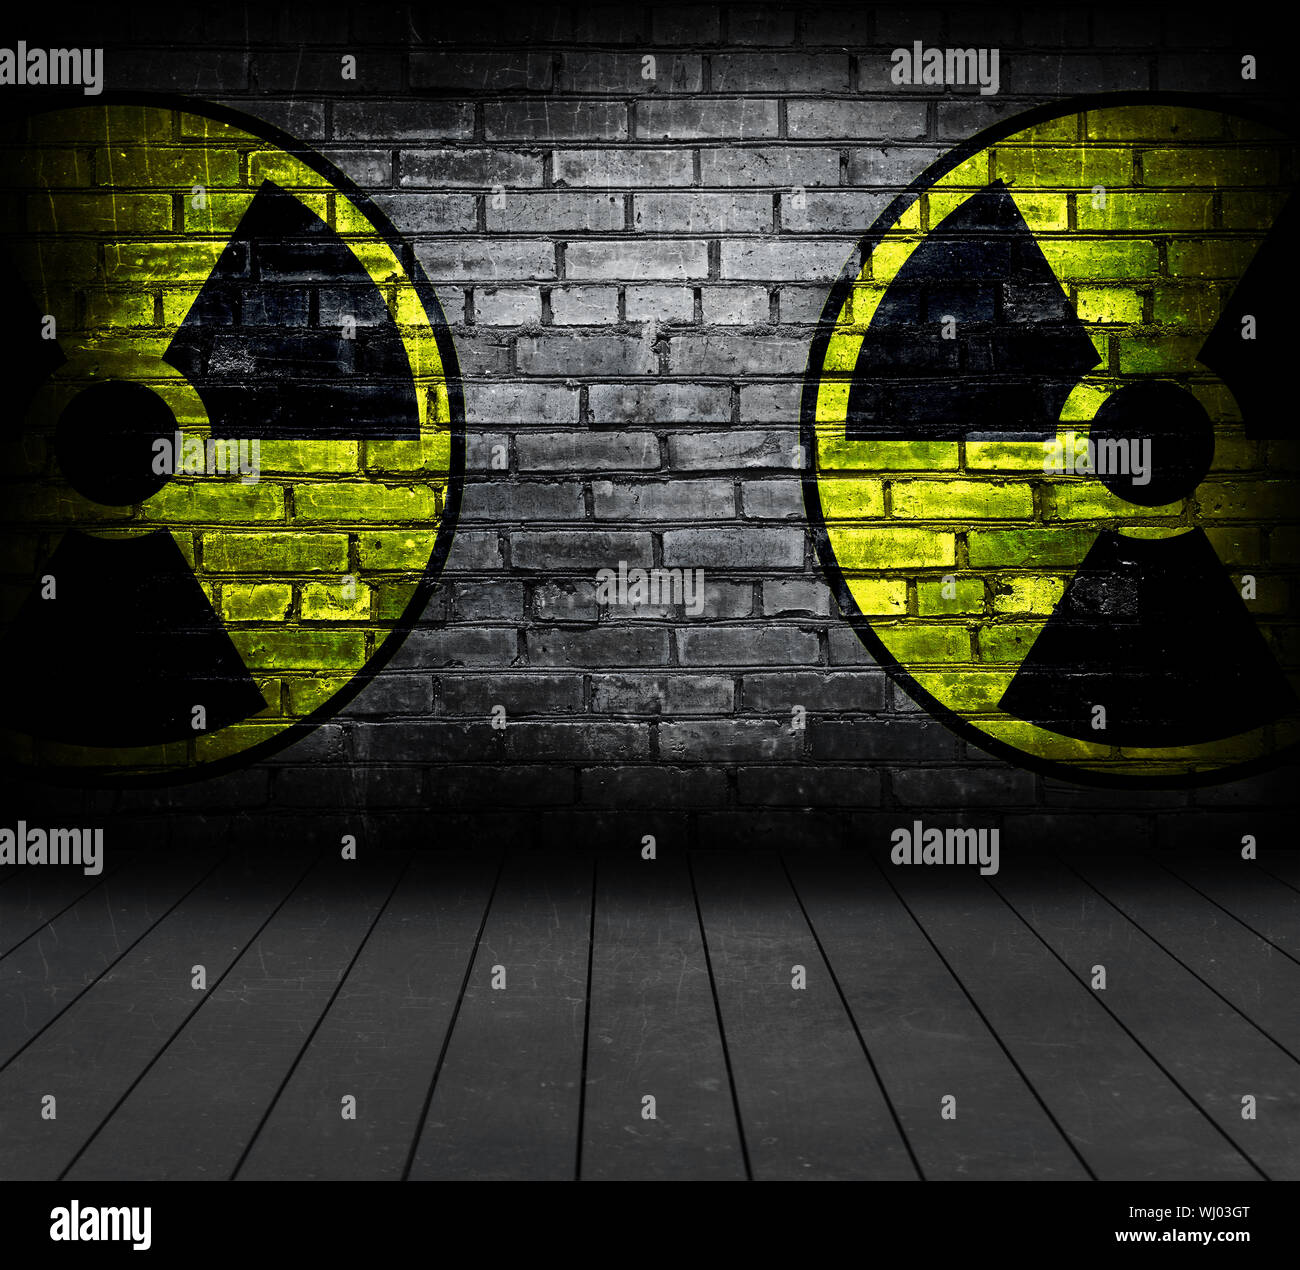 Radiation sign on a brick wall. - Stock Photo